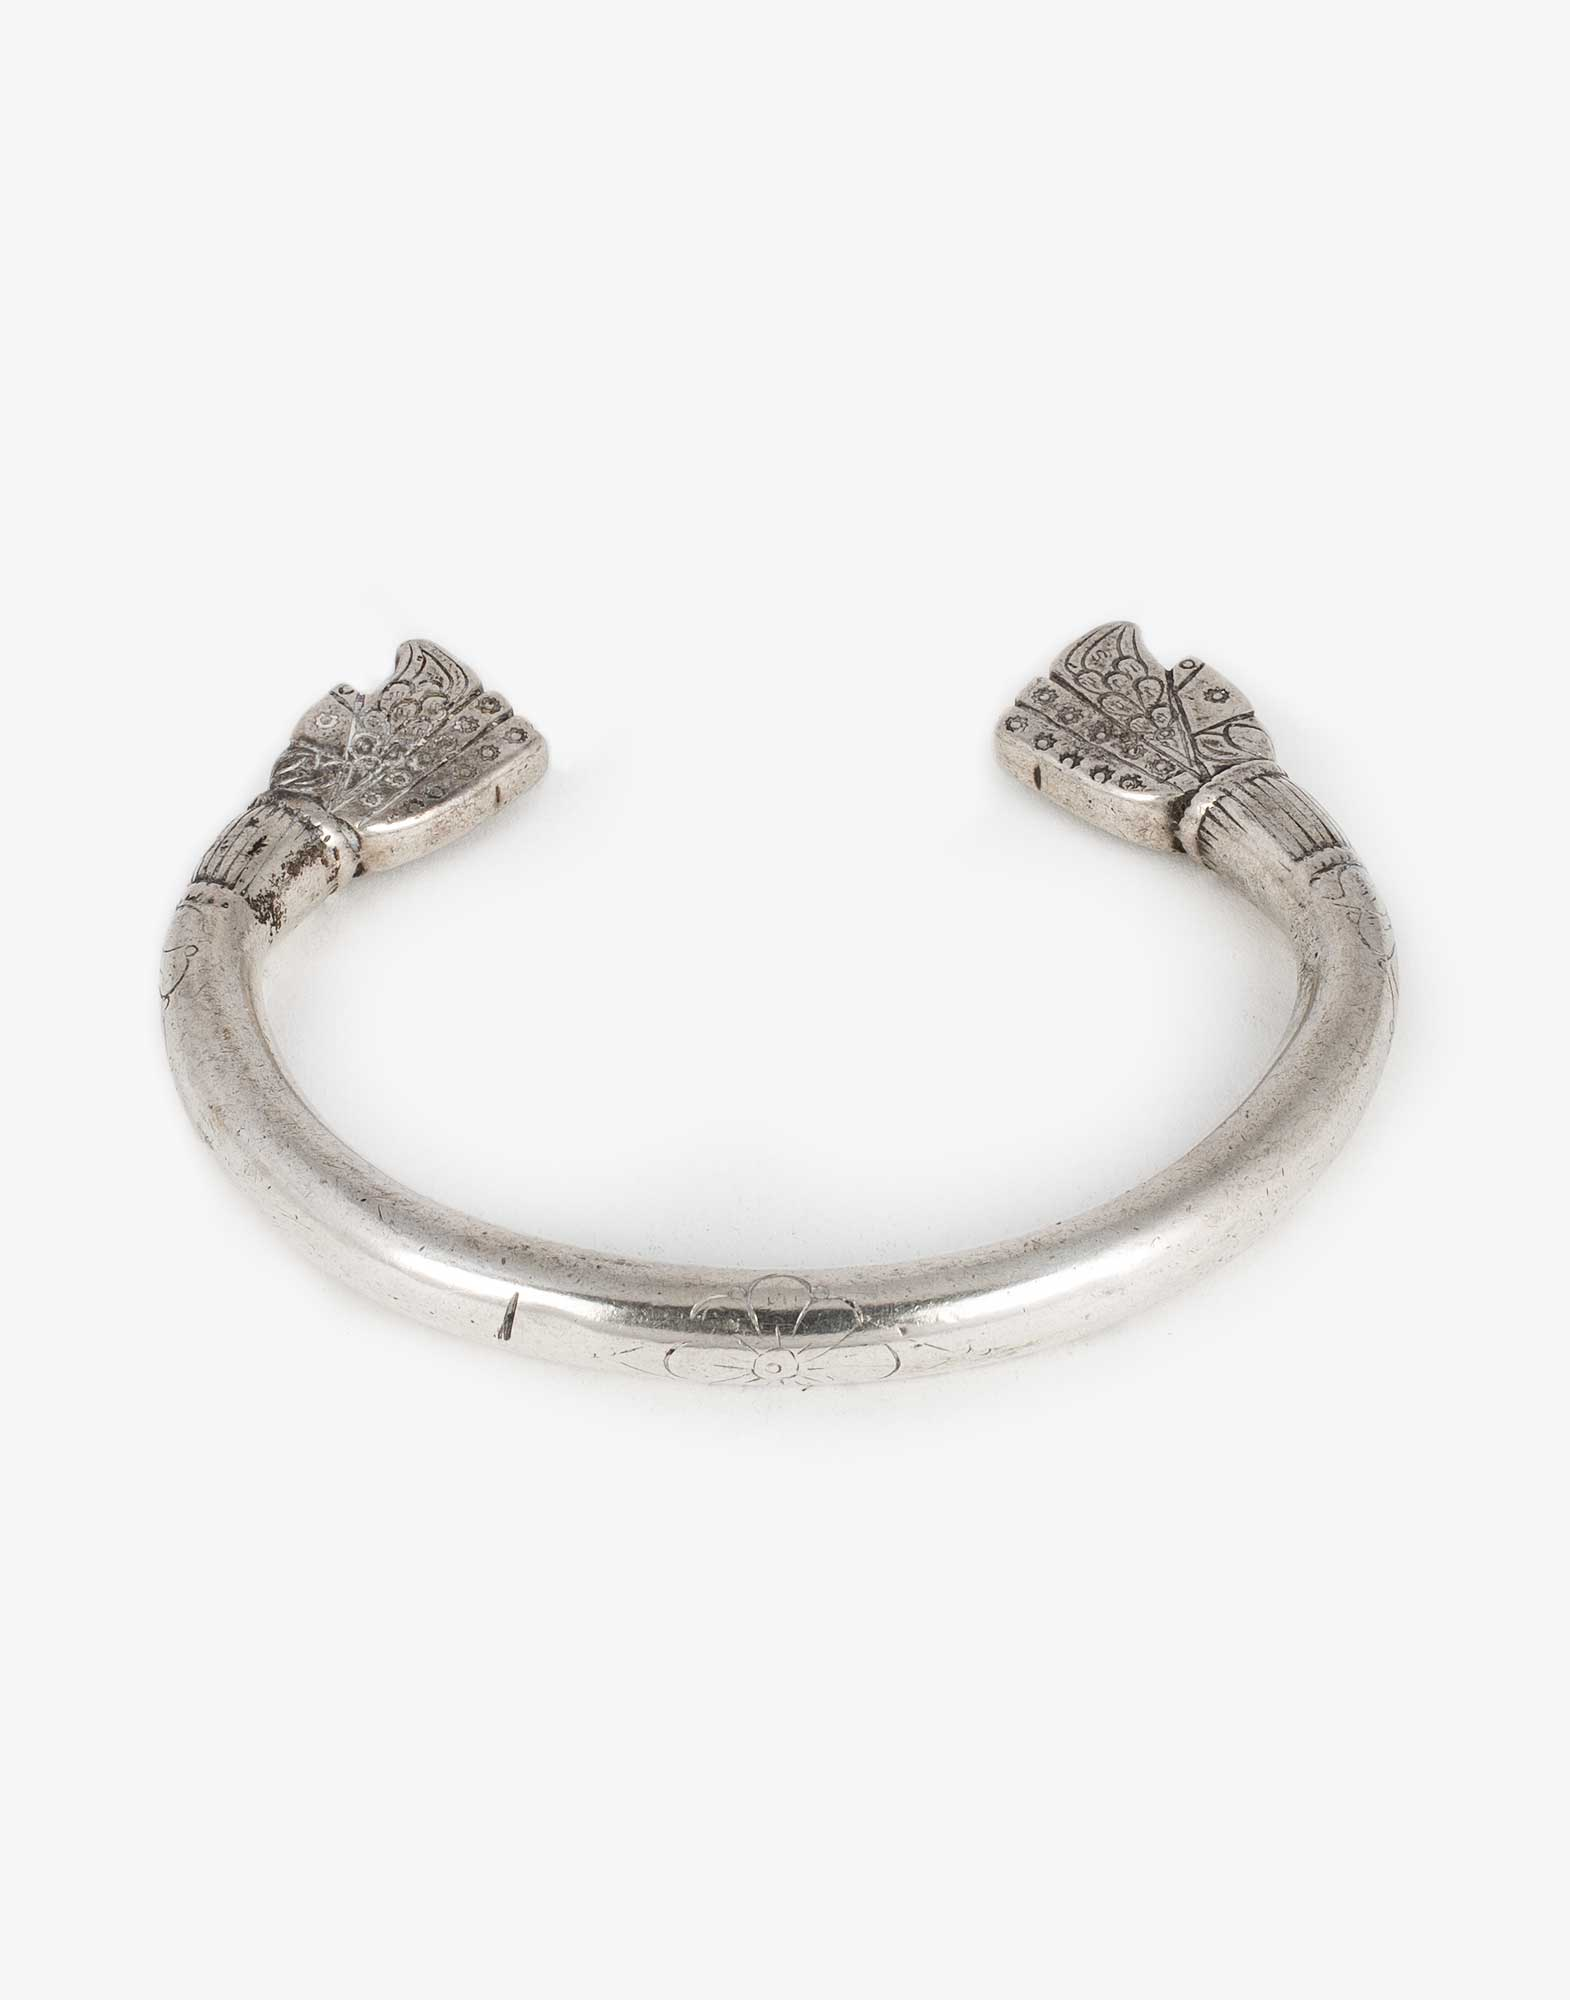 Antique Silver Bracelet Bangle